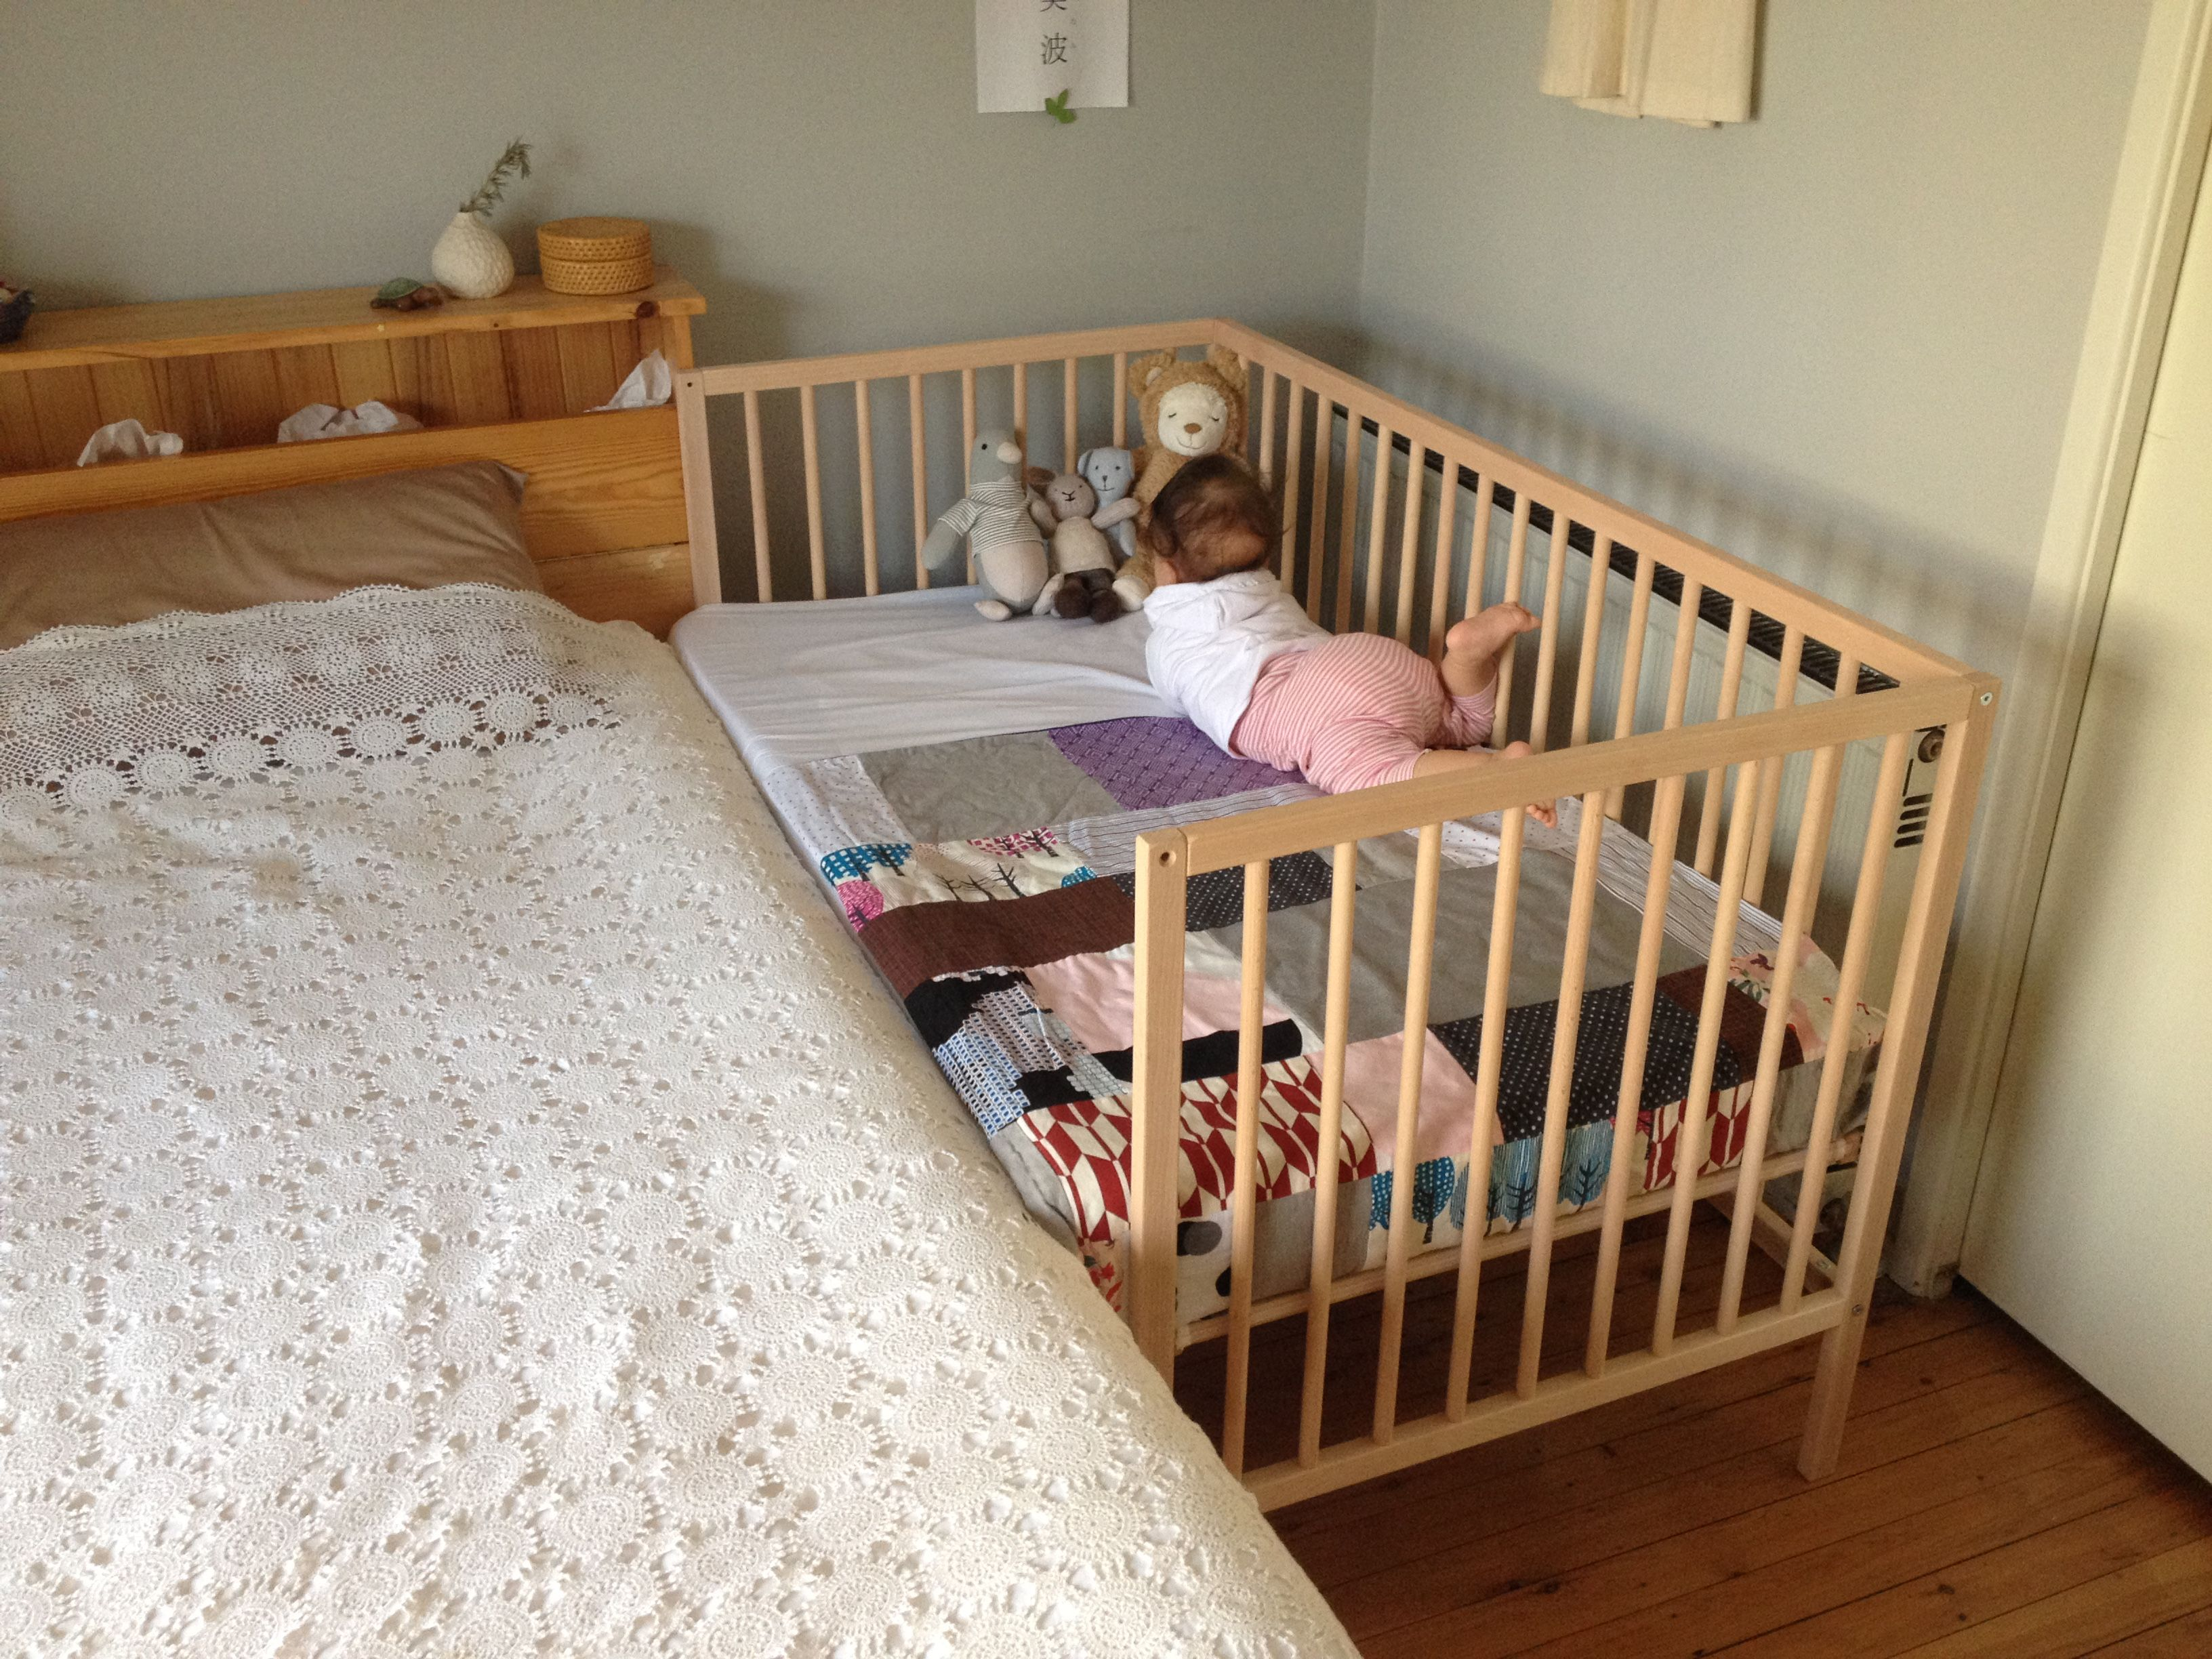 Baby bed with parents - A Co Sleeper Is A Baby Bed That Attaches To One Side Of An Adult Bed It Allows Baby To Remain Close To The Parents At Night Without Actually Being In The